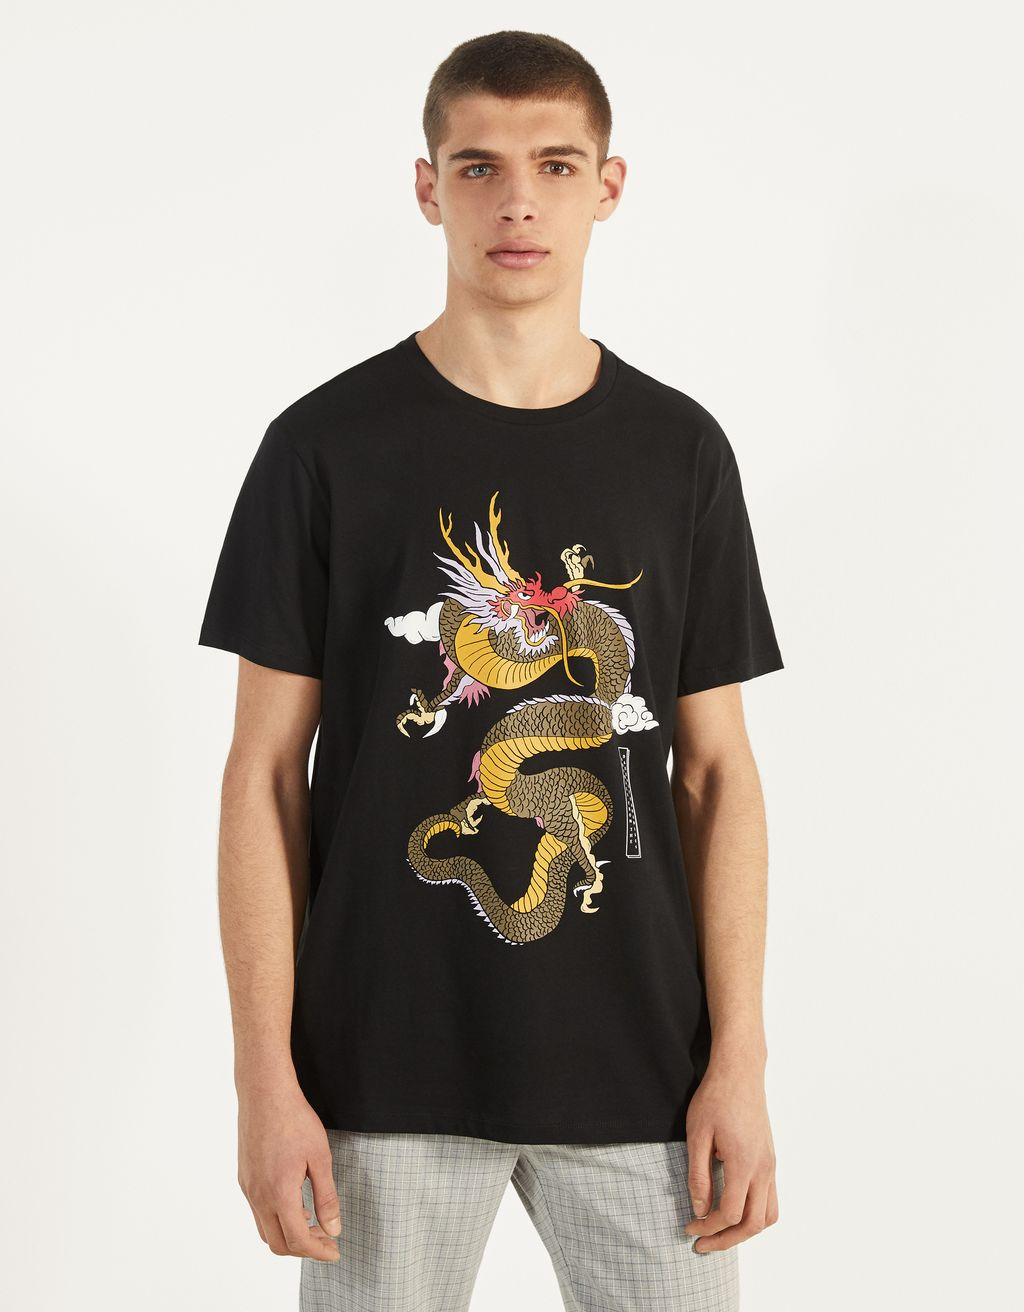 T-shirt à imprimé dragon